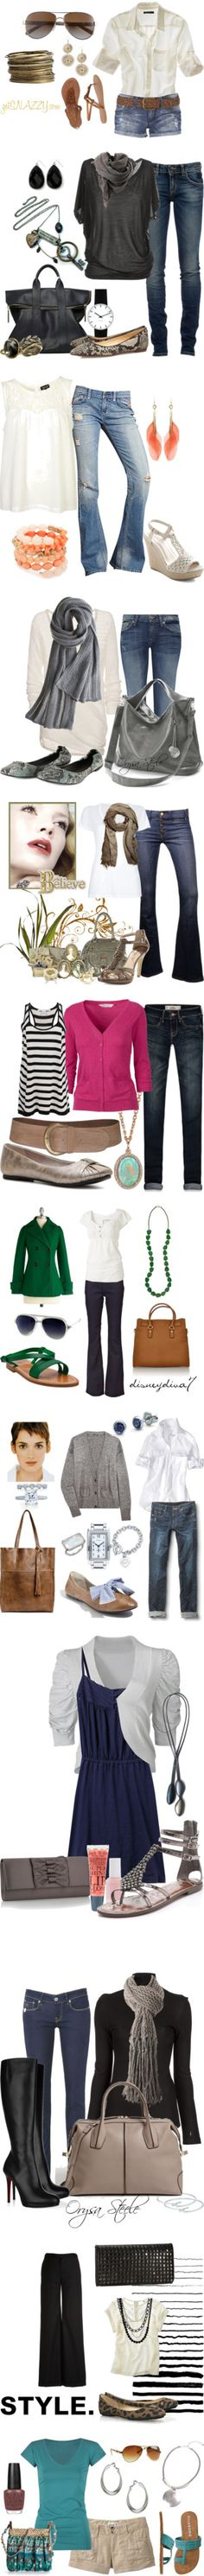 """""""Outfits from Basics - Moms of Polyvore"""" by getsnazzy ❤ liked on Polyvore"""